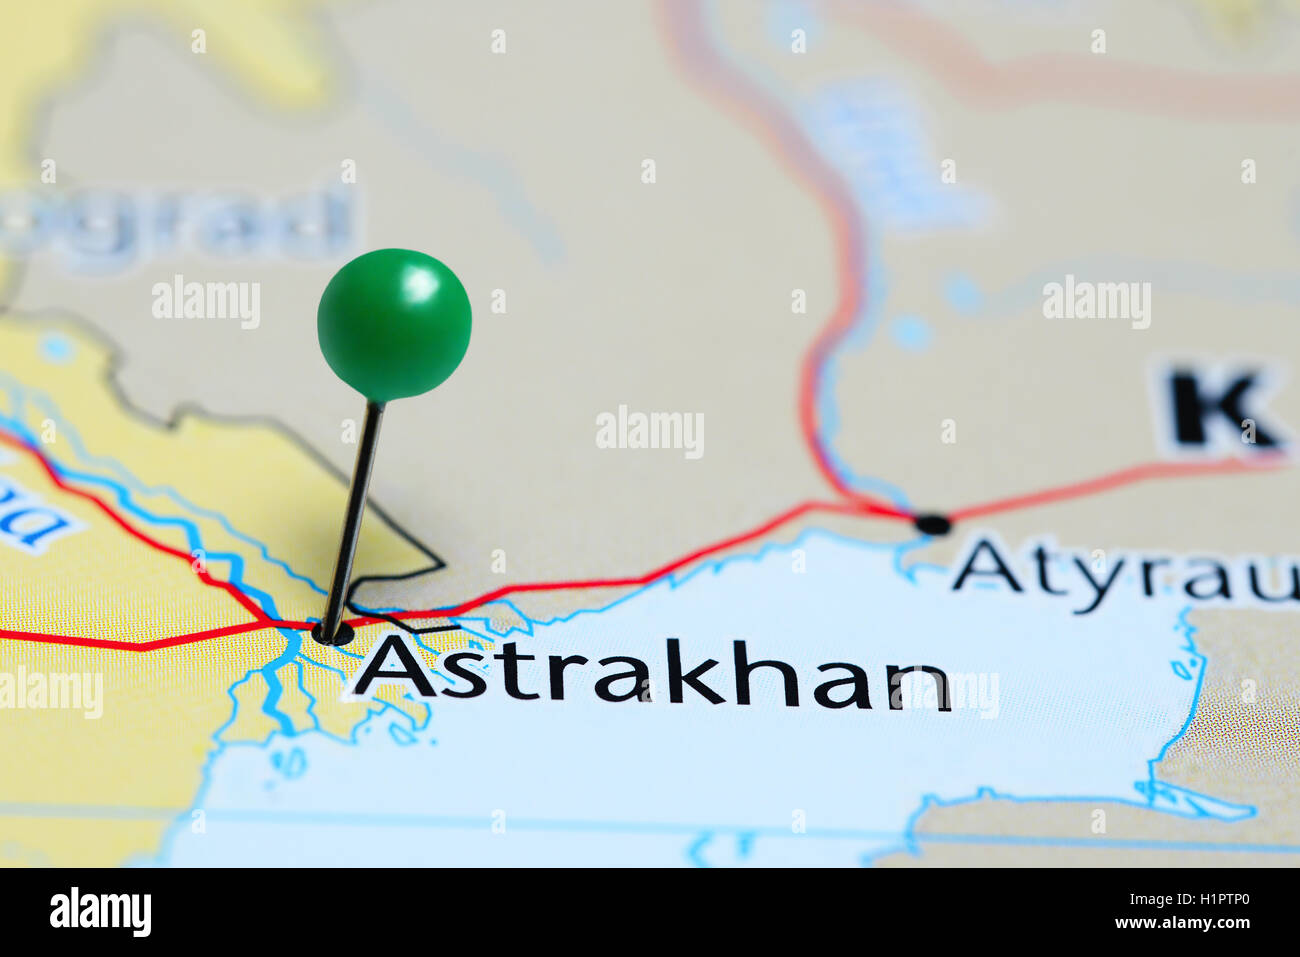 Astrakhan pinned on a map of Russia Stock Photo Royalty Free Image